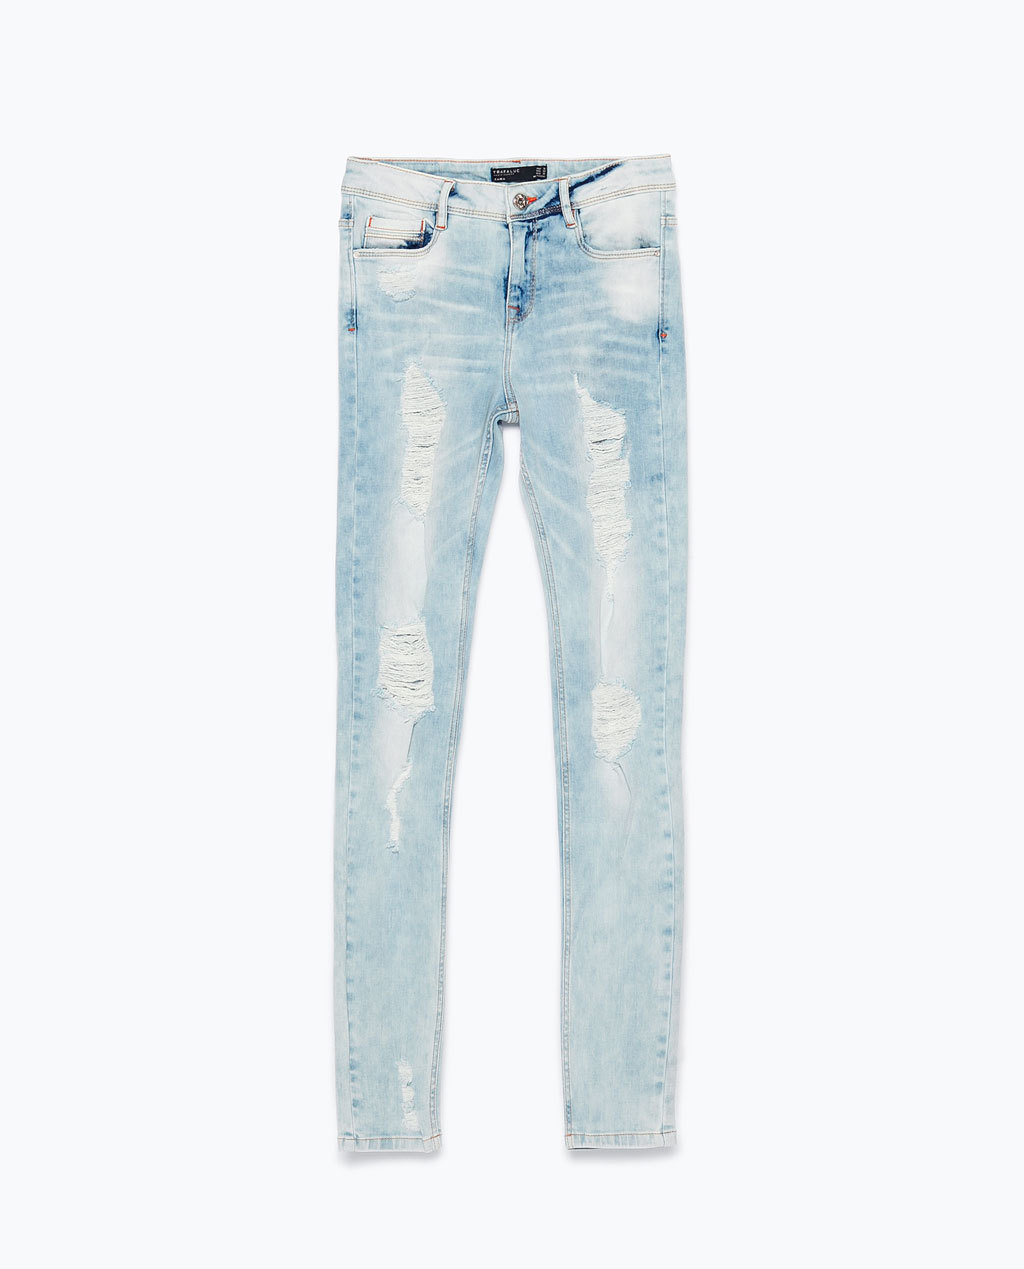 Ripped Skinny Jeans - style: skinny leg; length: standard; pattern: plain; pocket detail: traditional 5 pocket; waist: mid/regular rise; predominant colour: pale blue; occasions: casual; fibres: cotton - stretch; jeans & bottoms detail: turn ups; texture group: denim; pattern type: fabric; jeans detail: rips; season: s/s 2015; wardrobe: basic